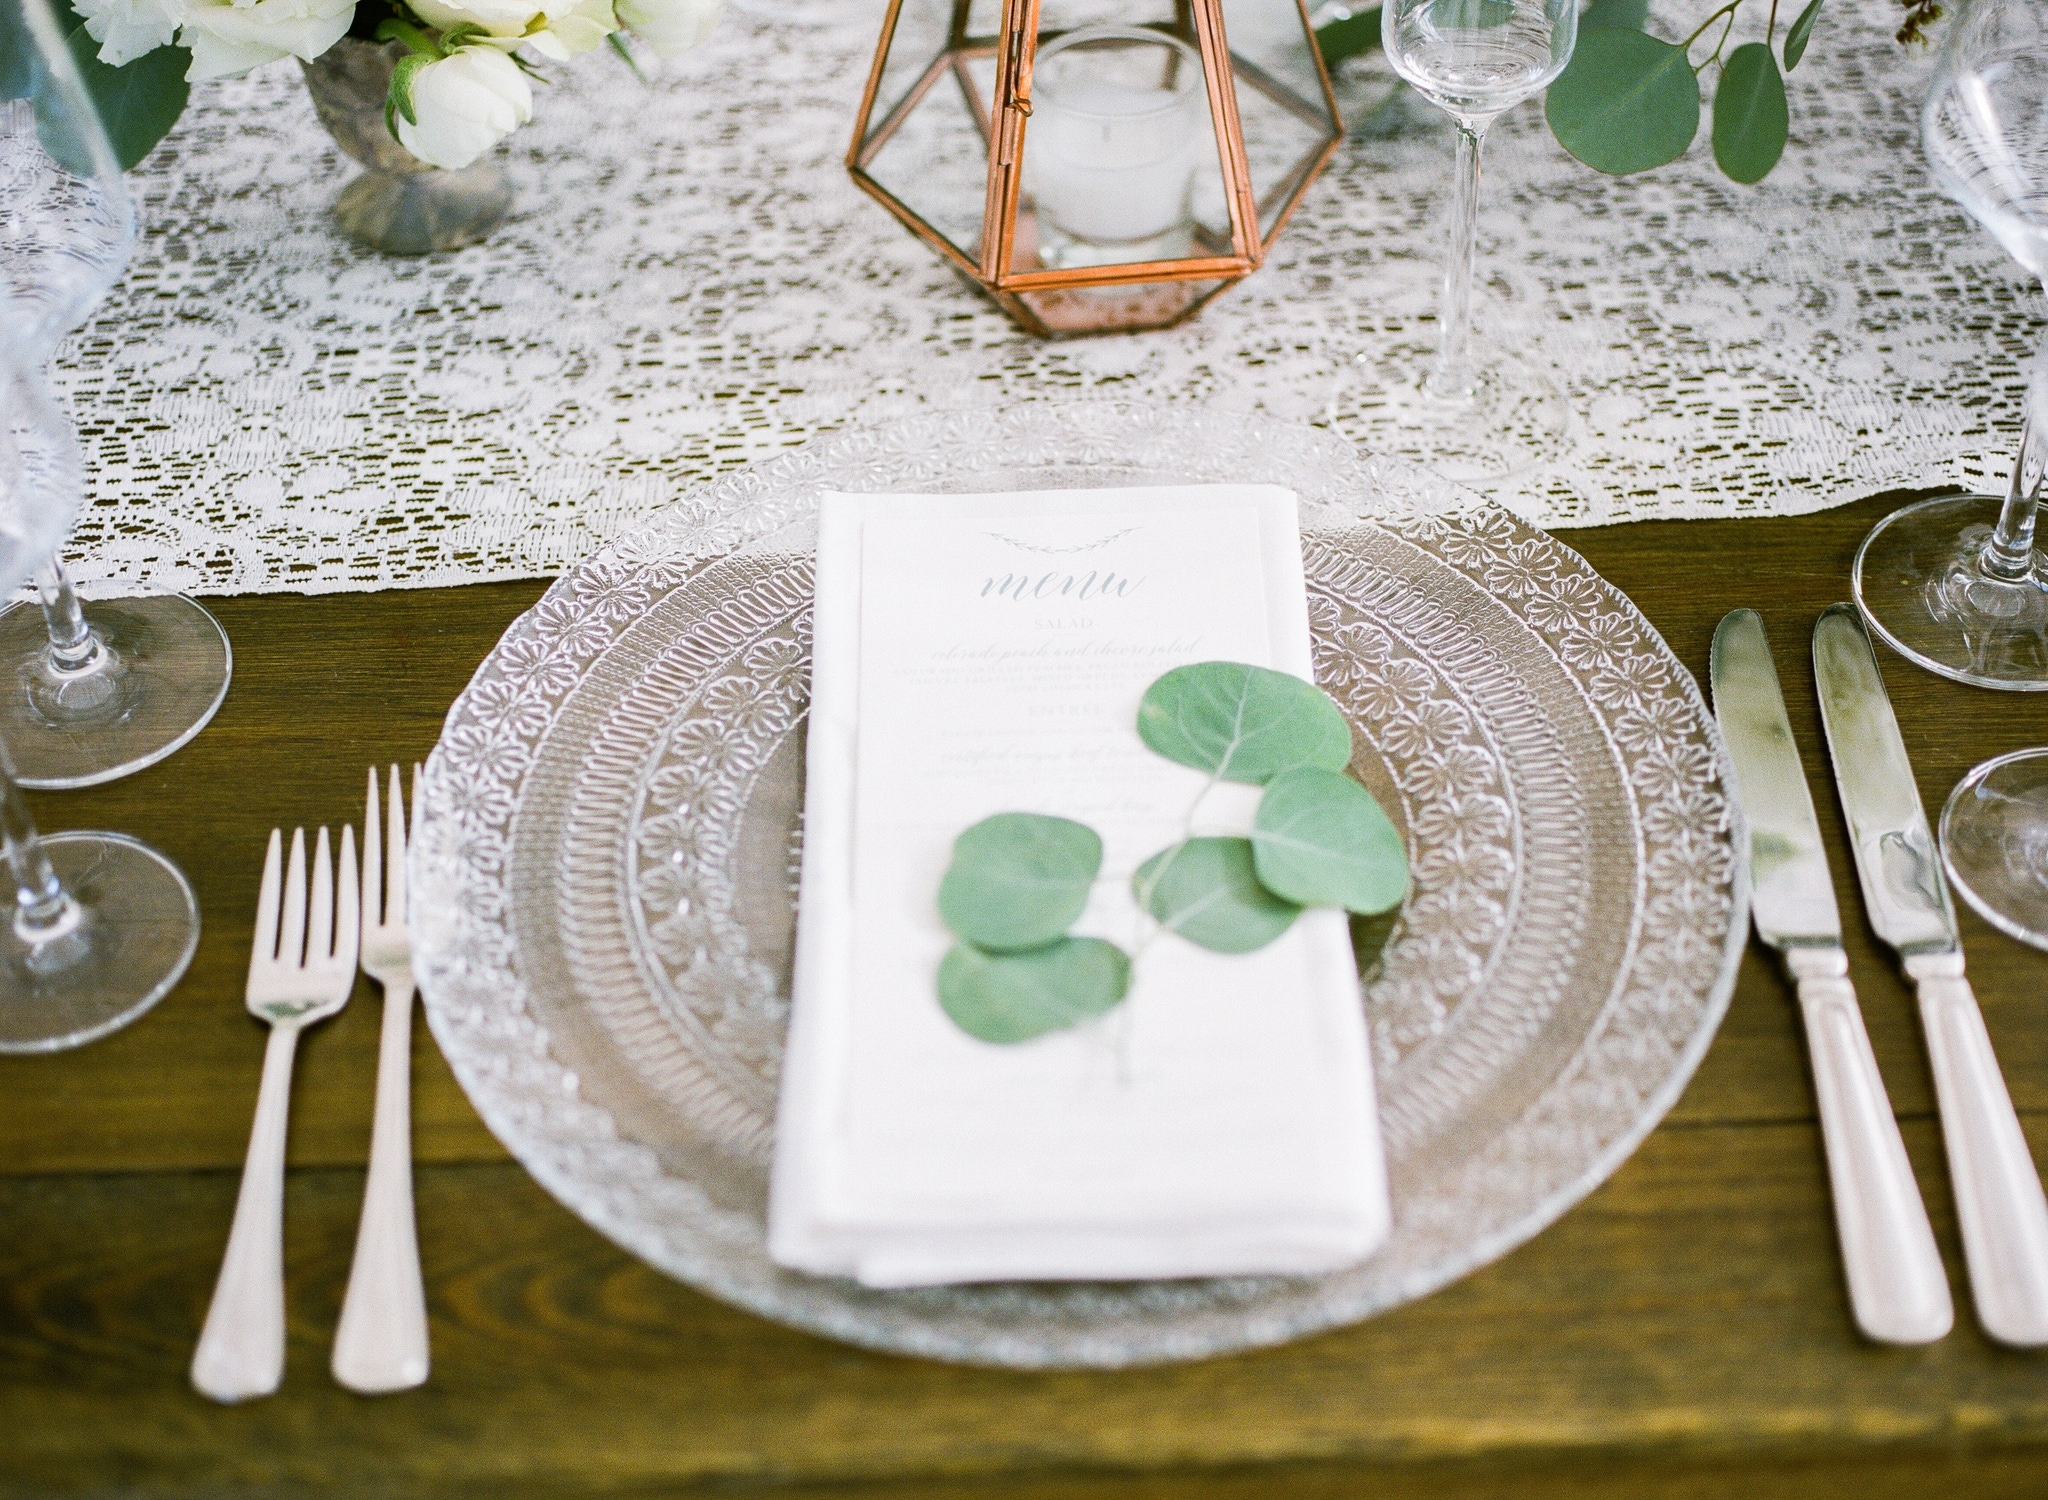 White and Green Party table setting